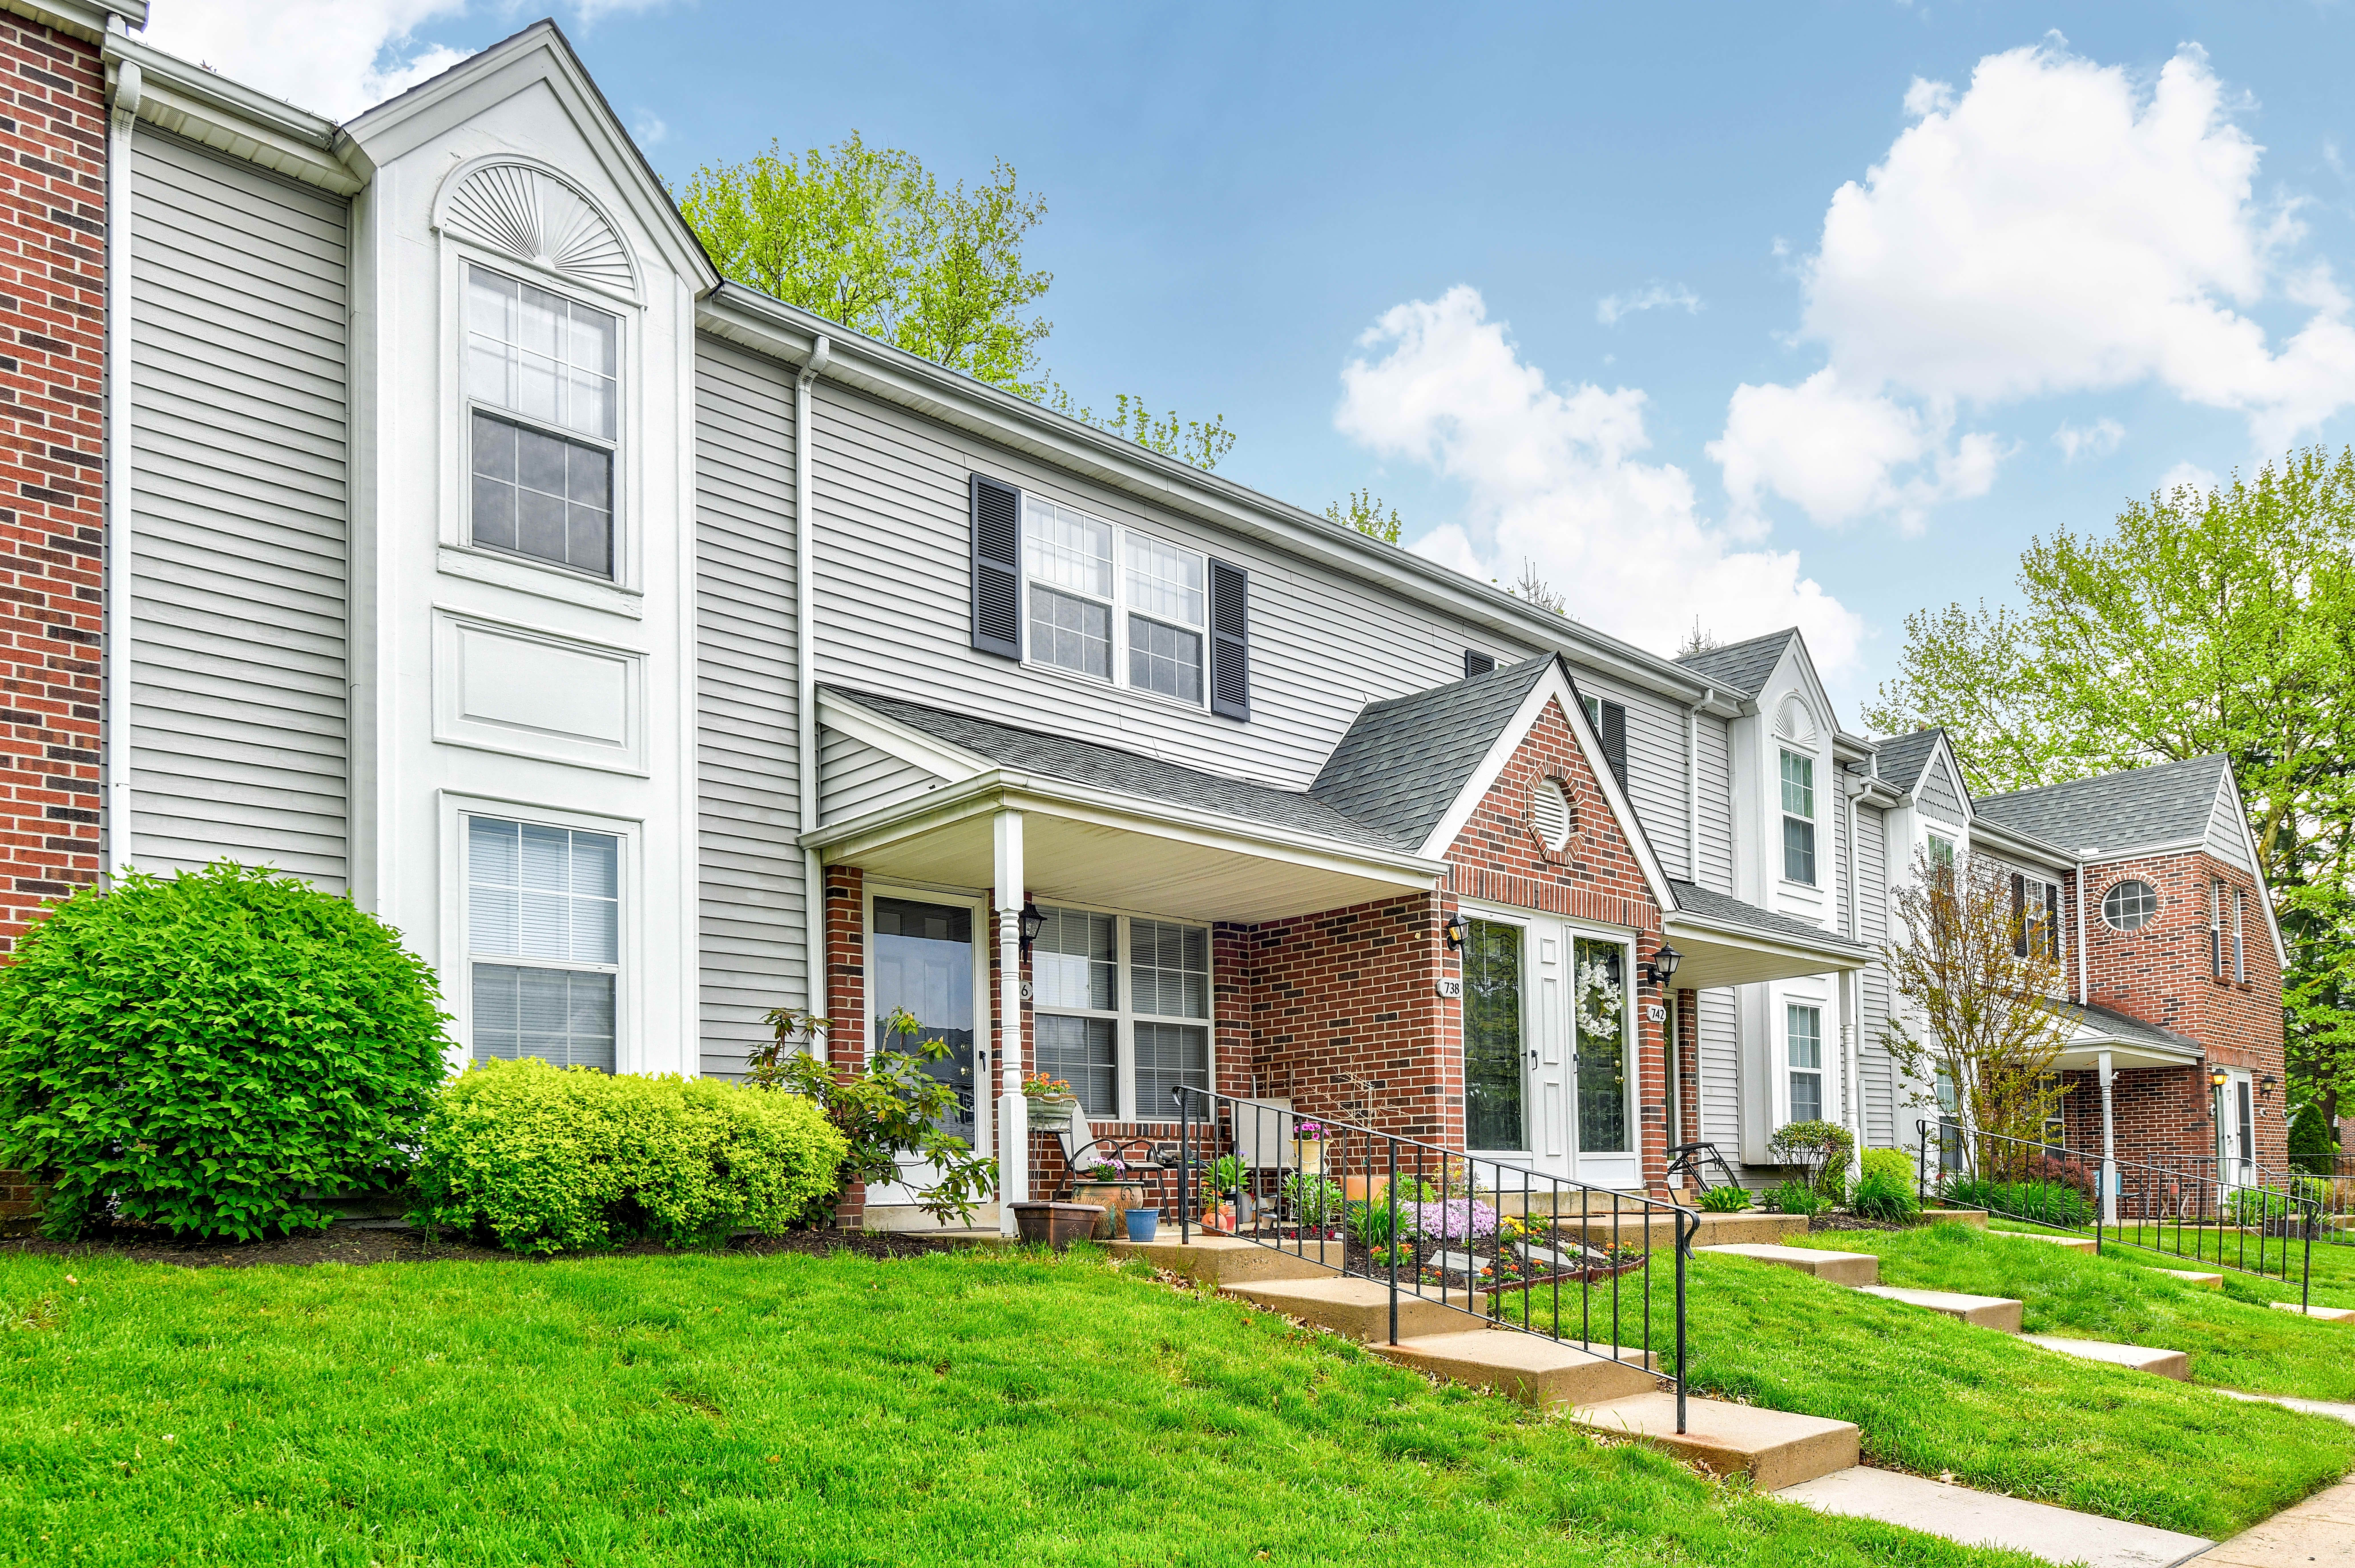 Apartments Near Penn St Great Valley Westridge Gardens Luxury Rental Apartments for Pennsylvania State University Great Valley Students in Malvern, PA